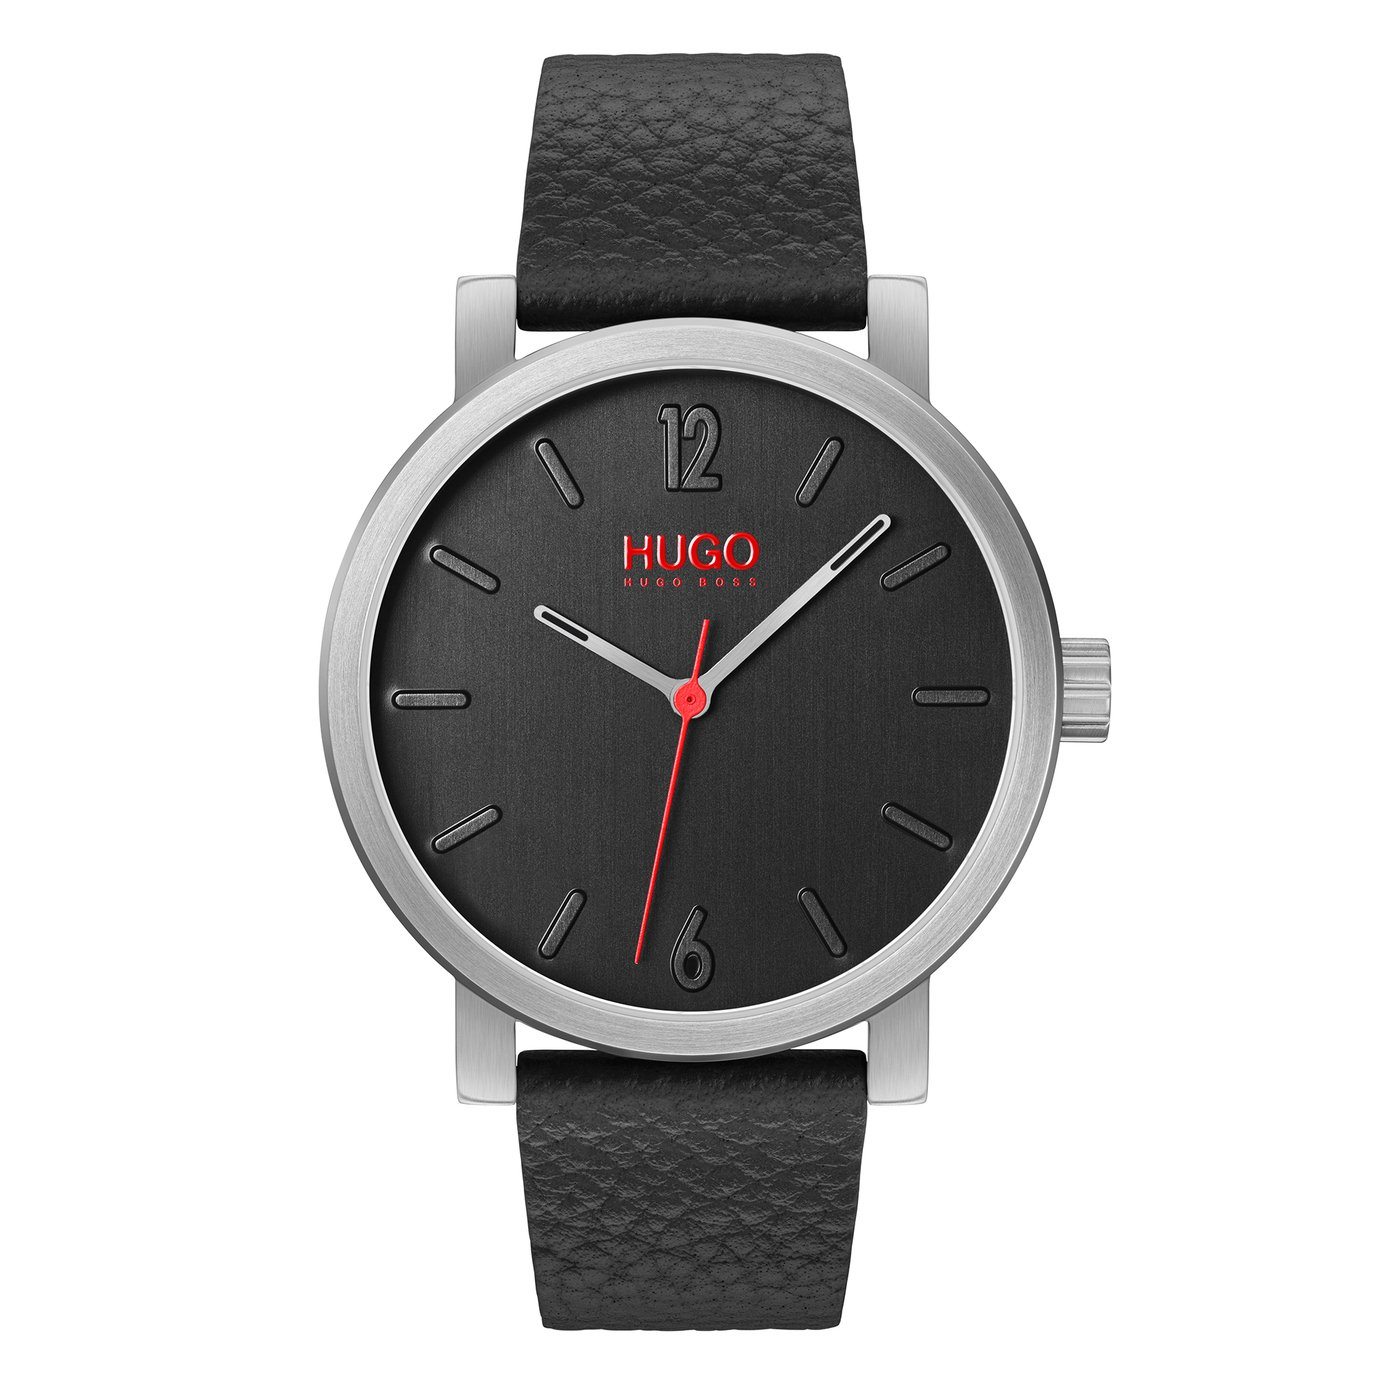 HUGO Men's Race Black Leather Strap Watch